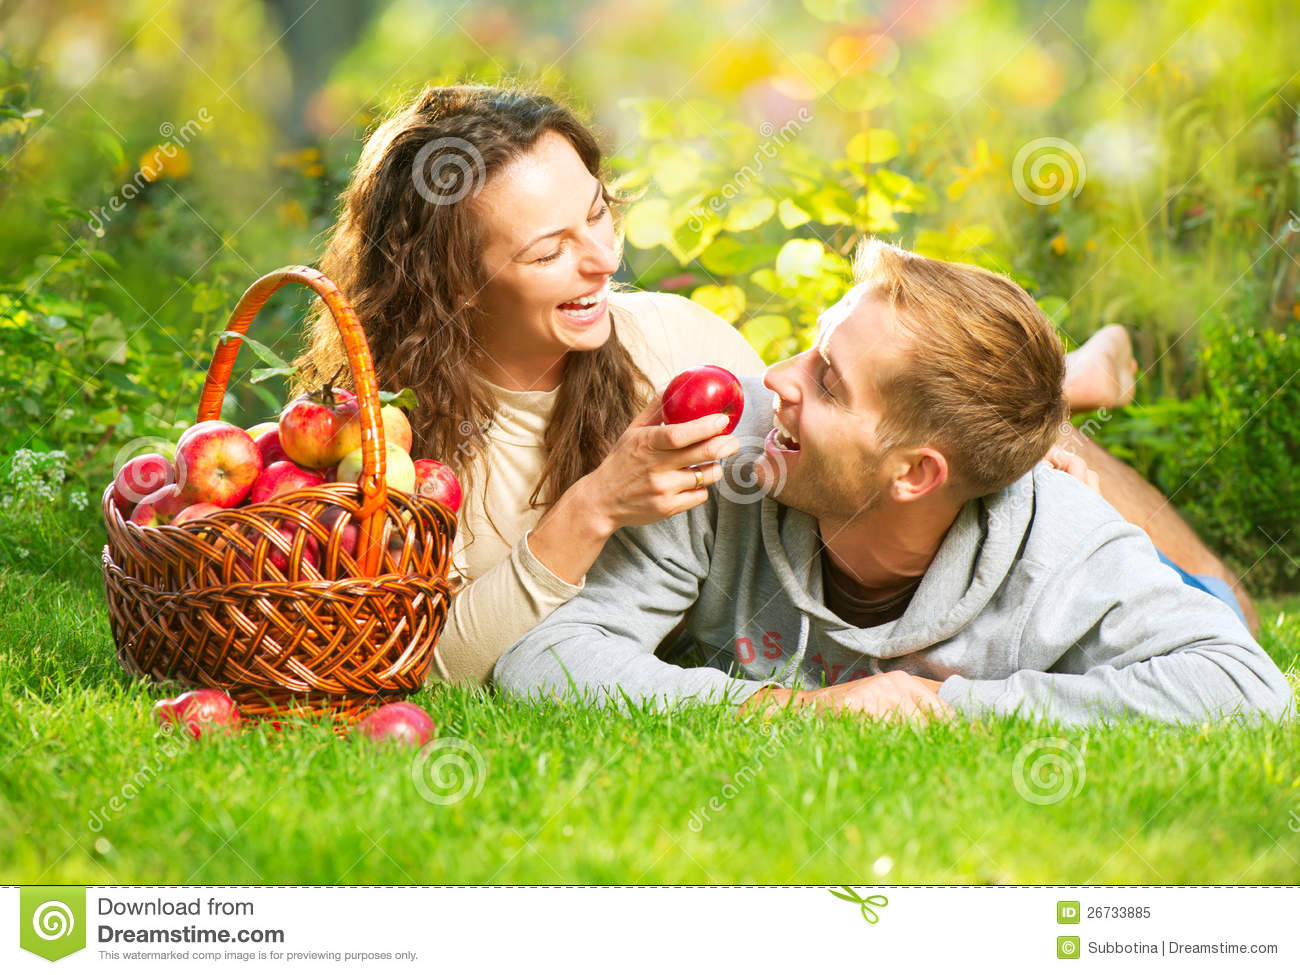 Couple Relaxing on the Grass and Eating Apples